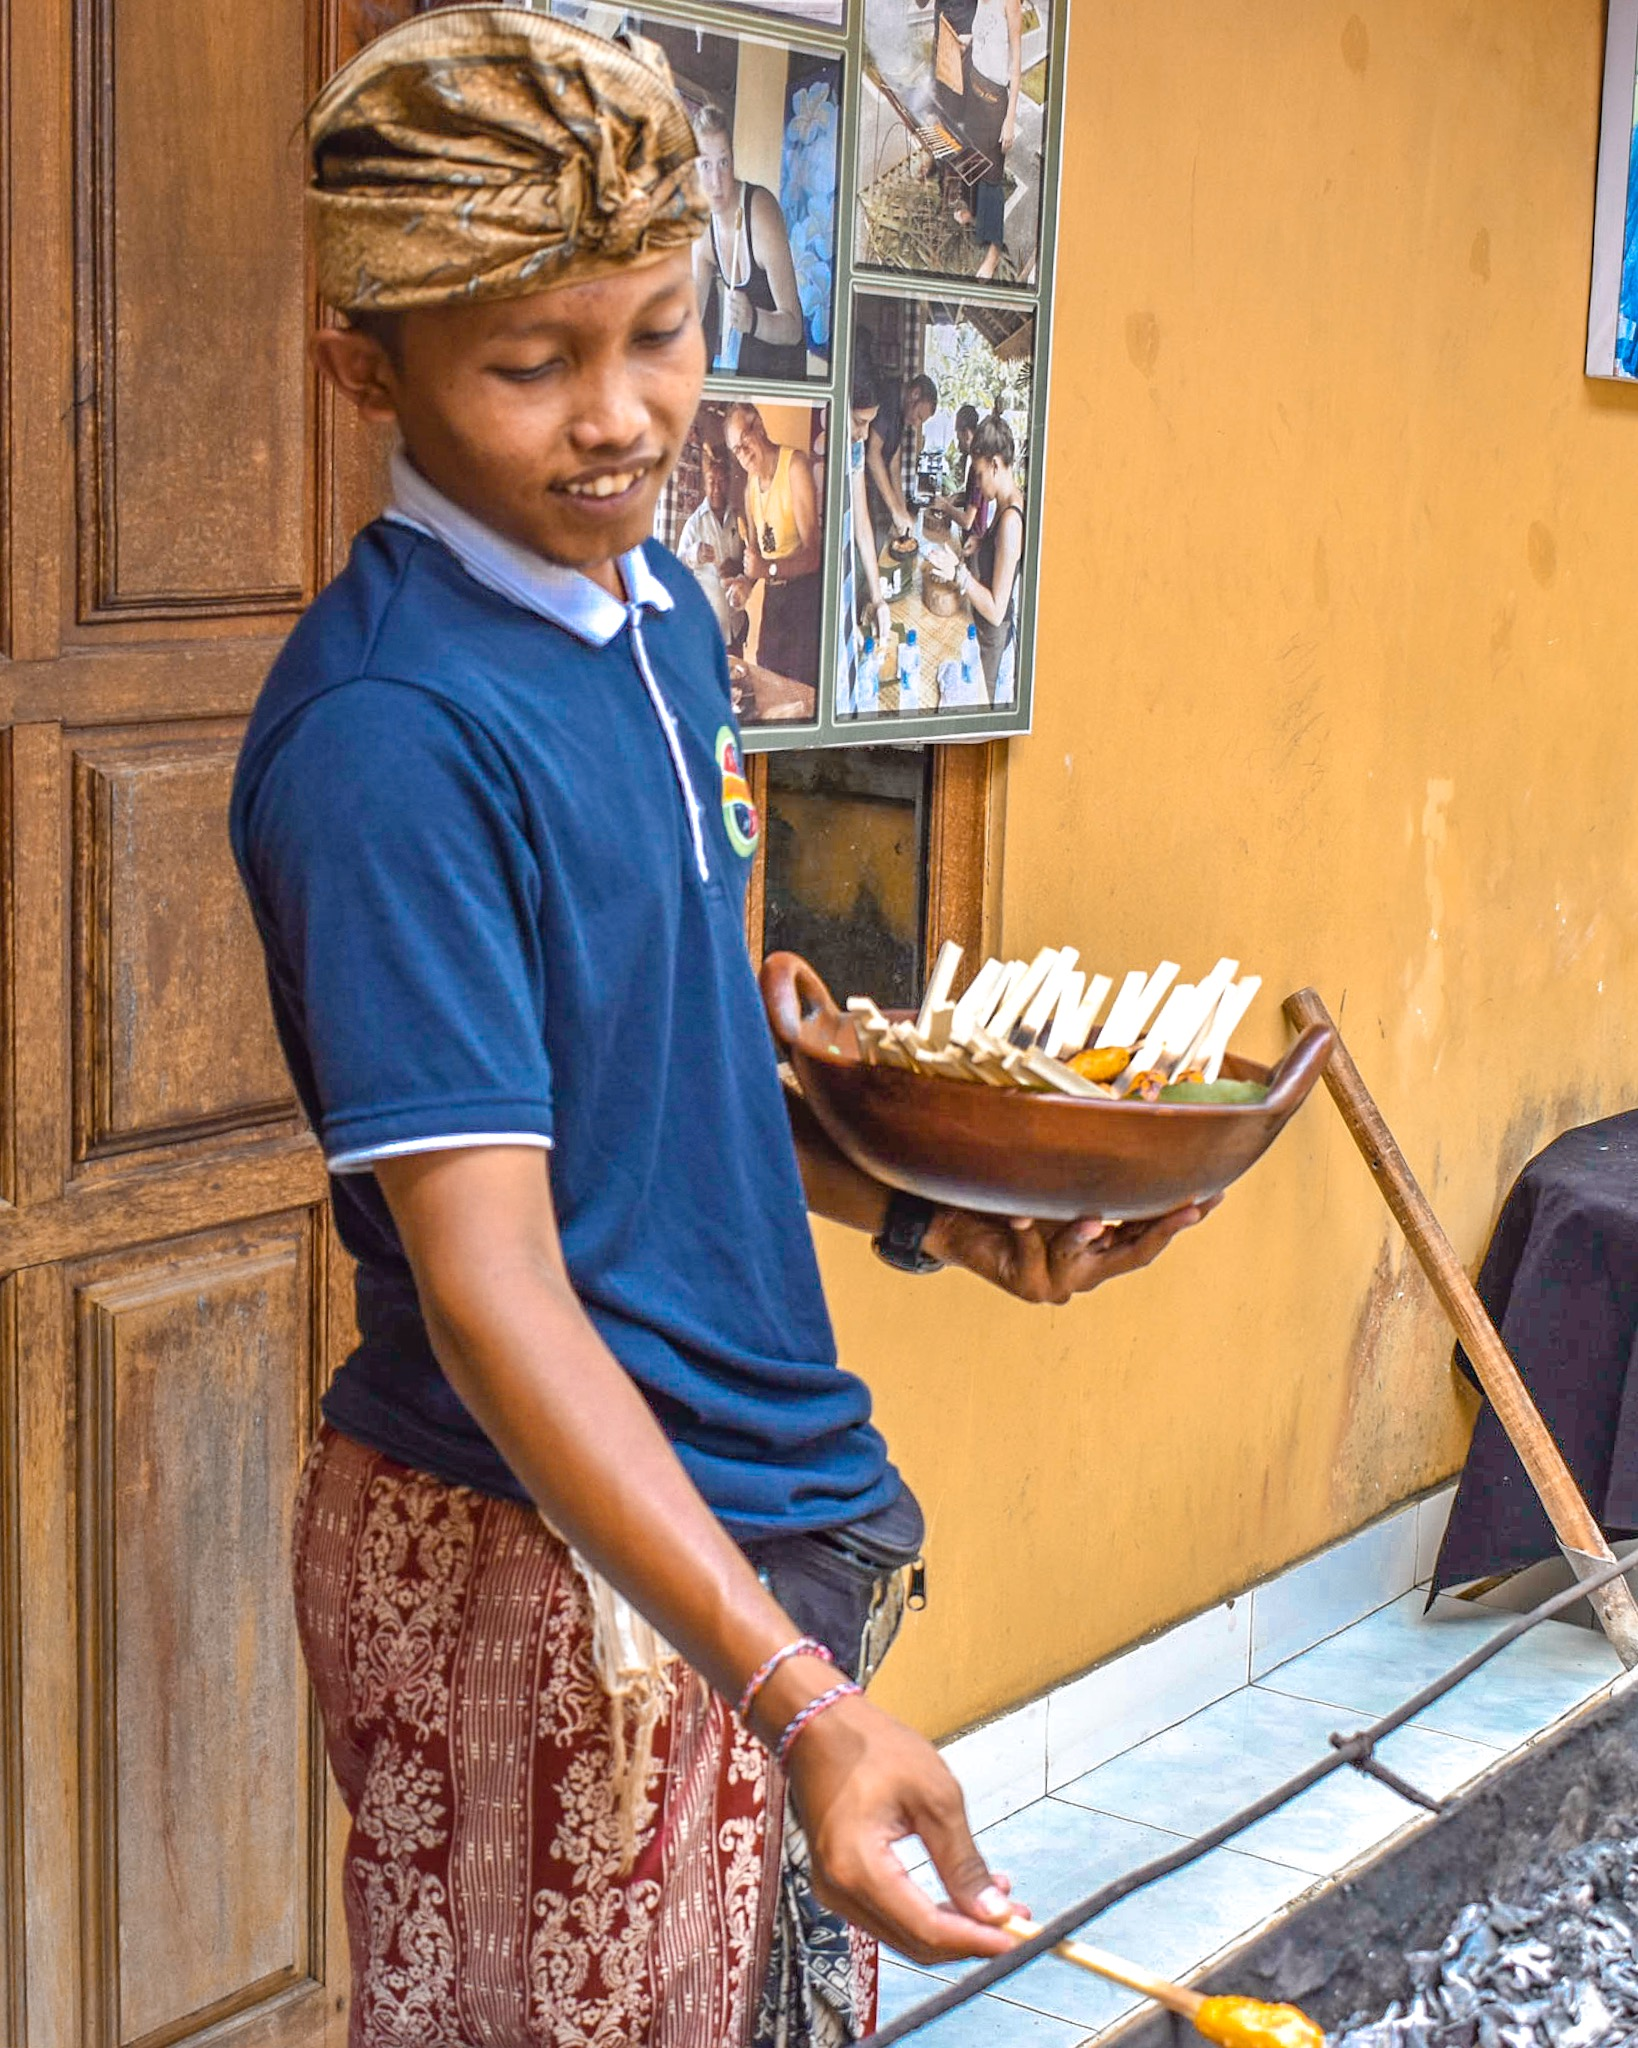 12-Year Old Assists with Cooking Sate Lalit in Bali